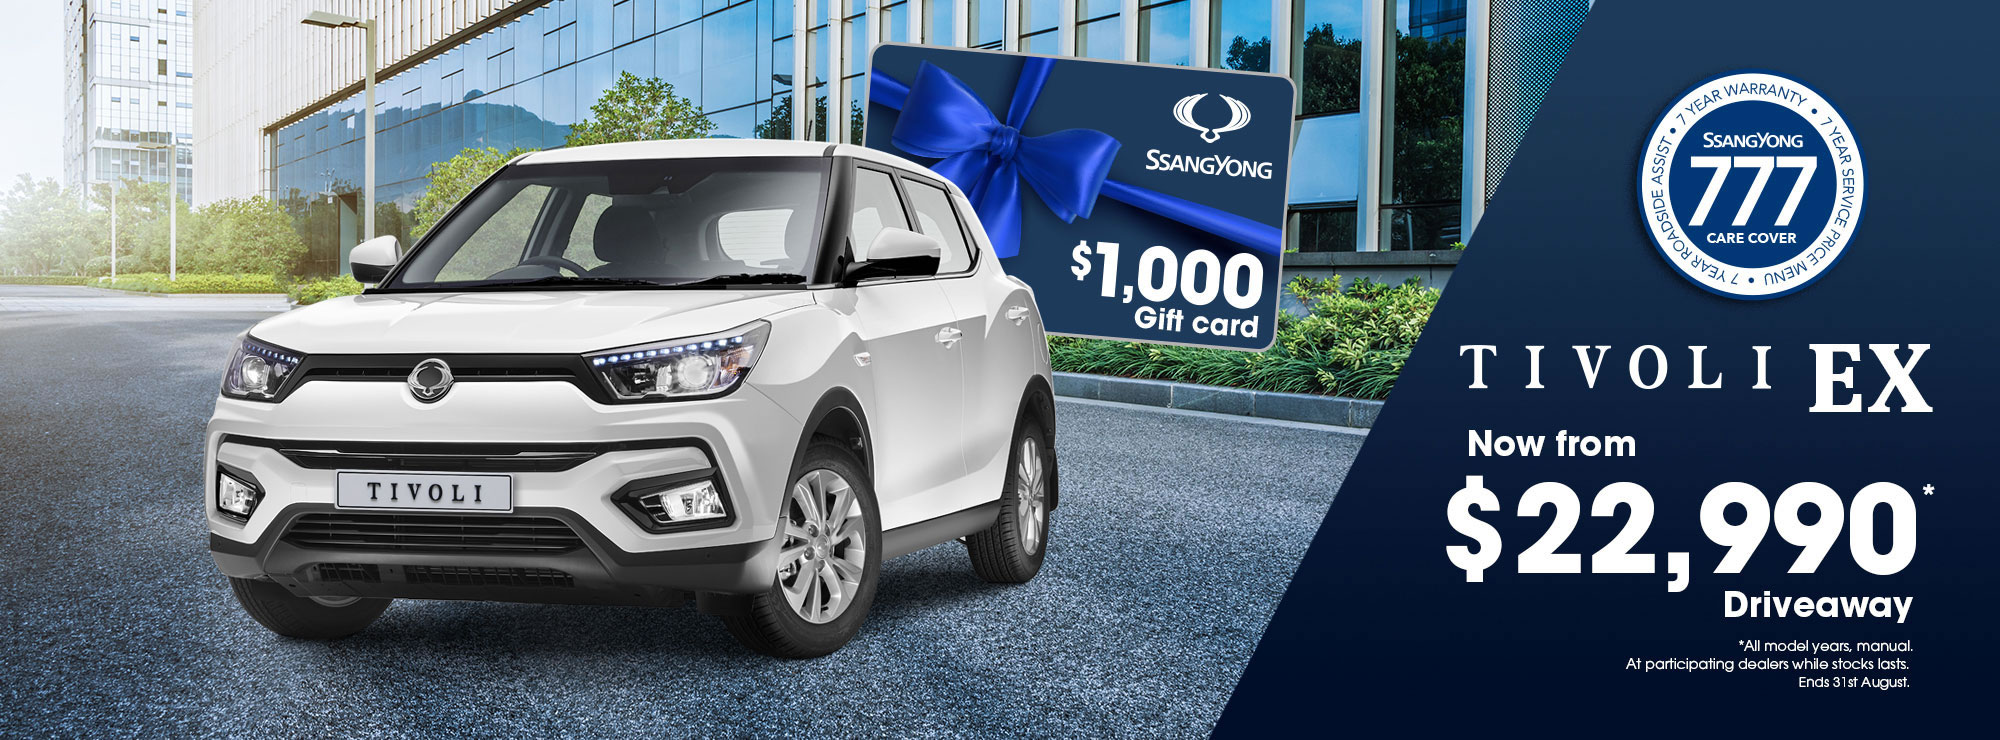 SsangYong Latest Special Offer